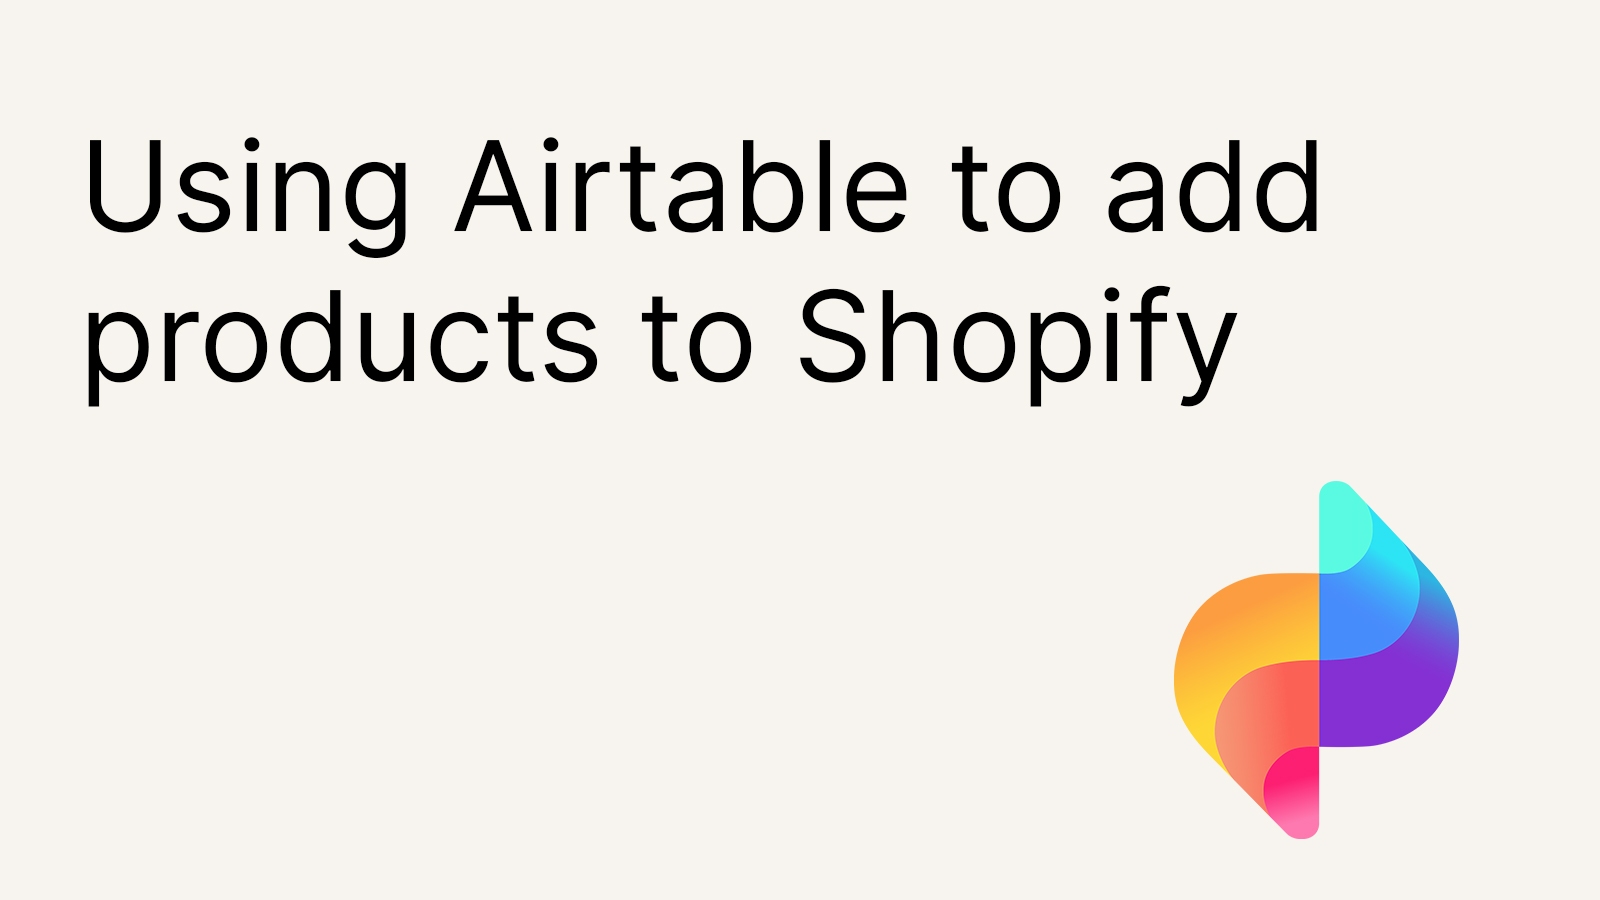 Using Airtable to add products to Shopify